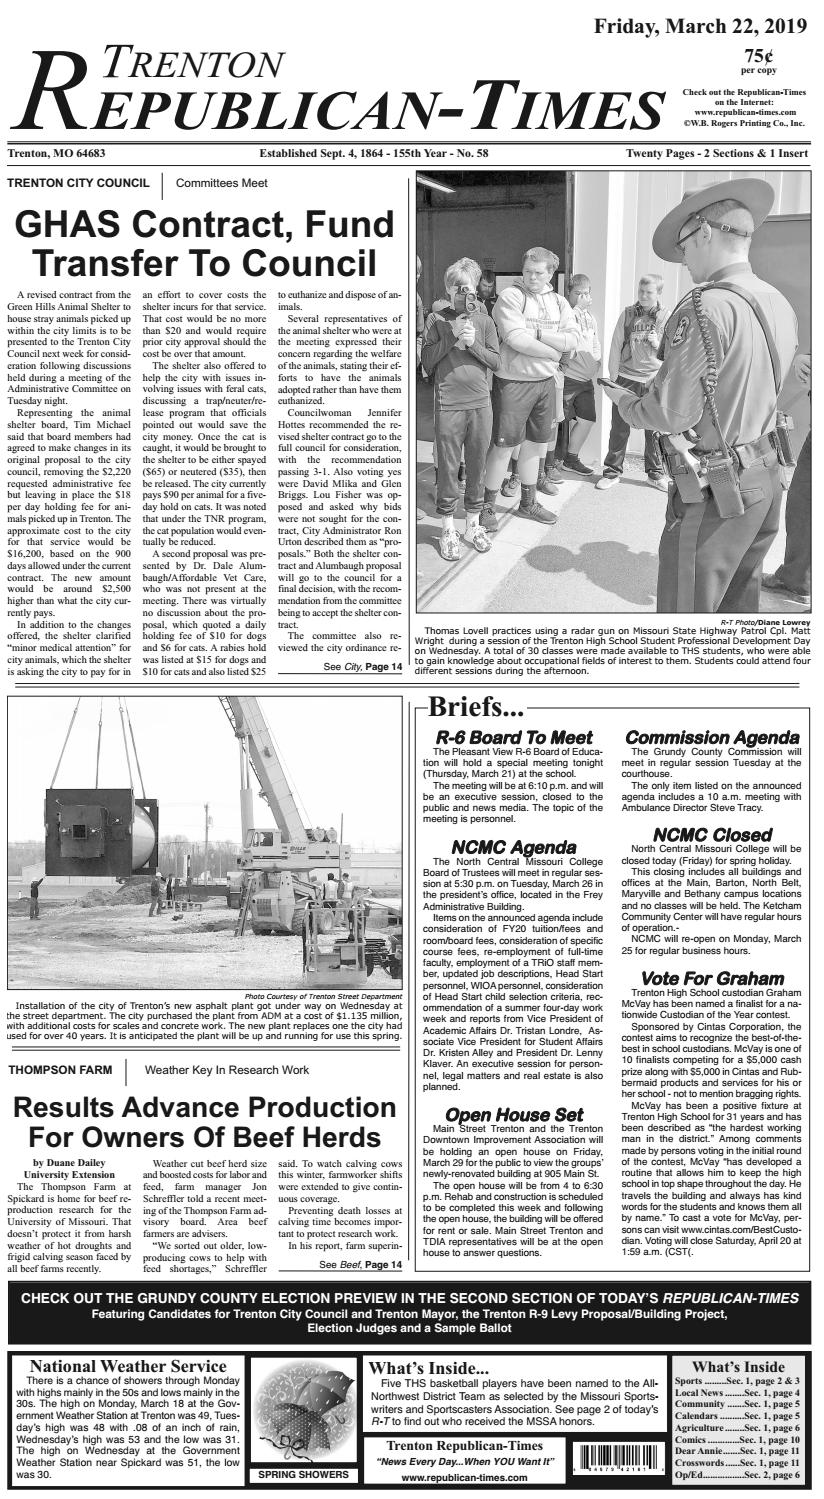 Trenton Republican-Times 3-22-19 by Gallatin Publishing